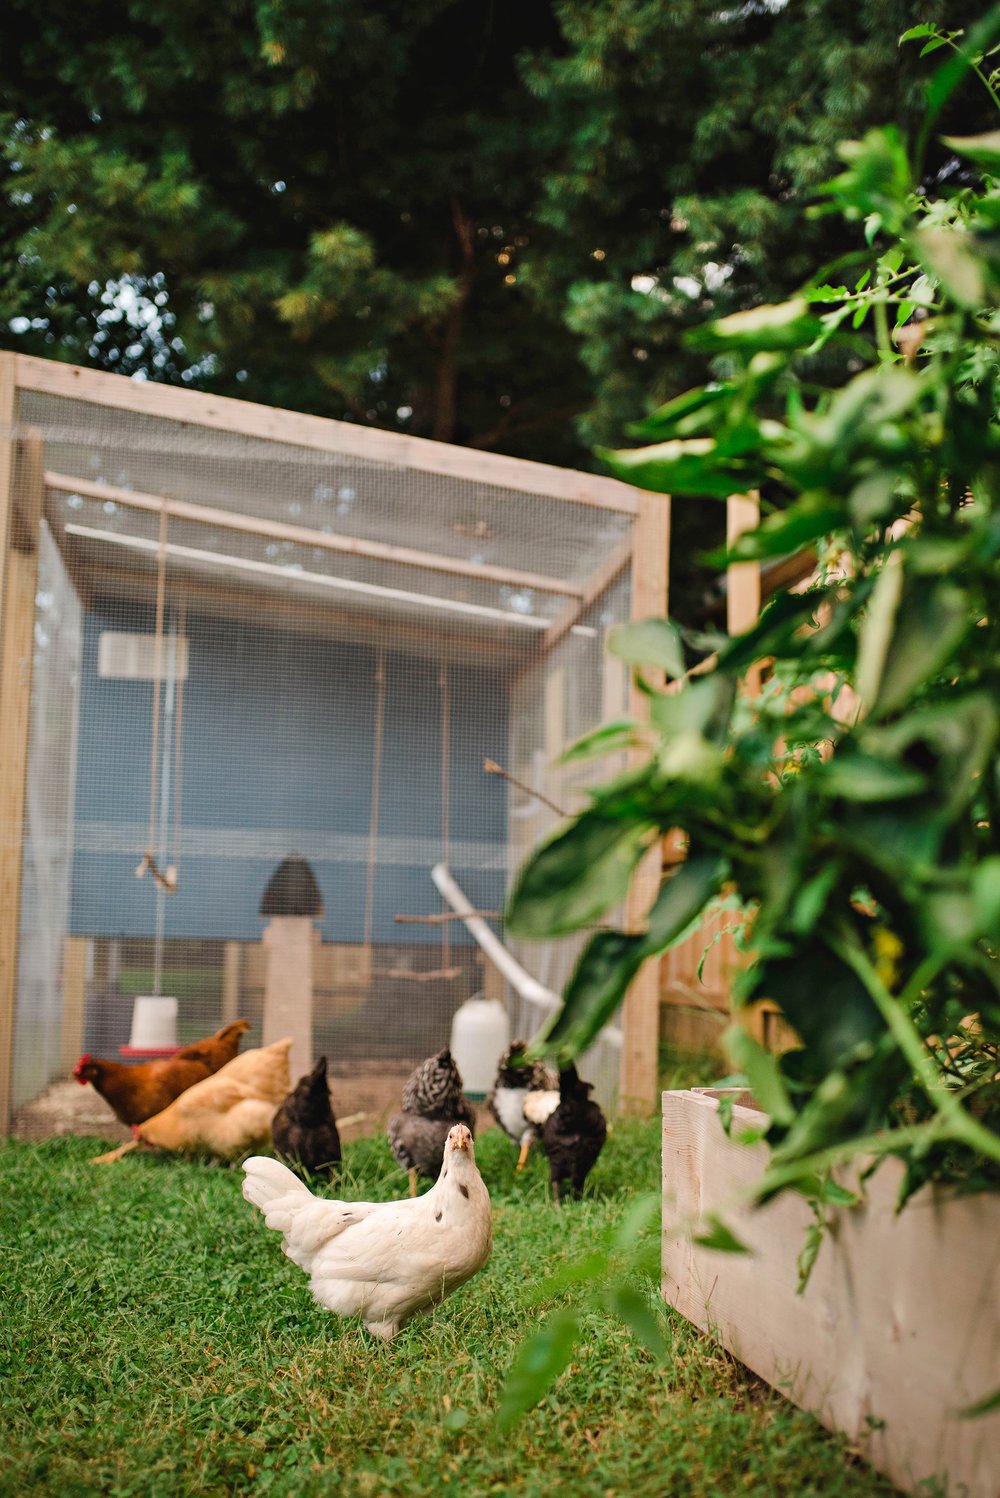 Jennifer Lee Photography Quincy, IL Urban Chicken Farming